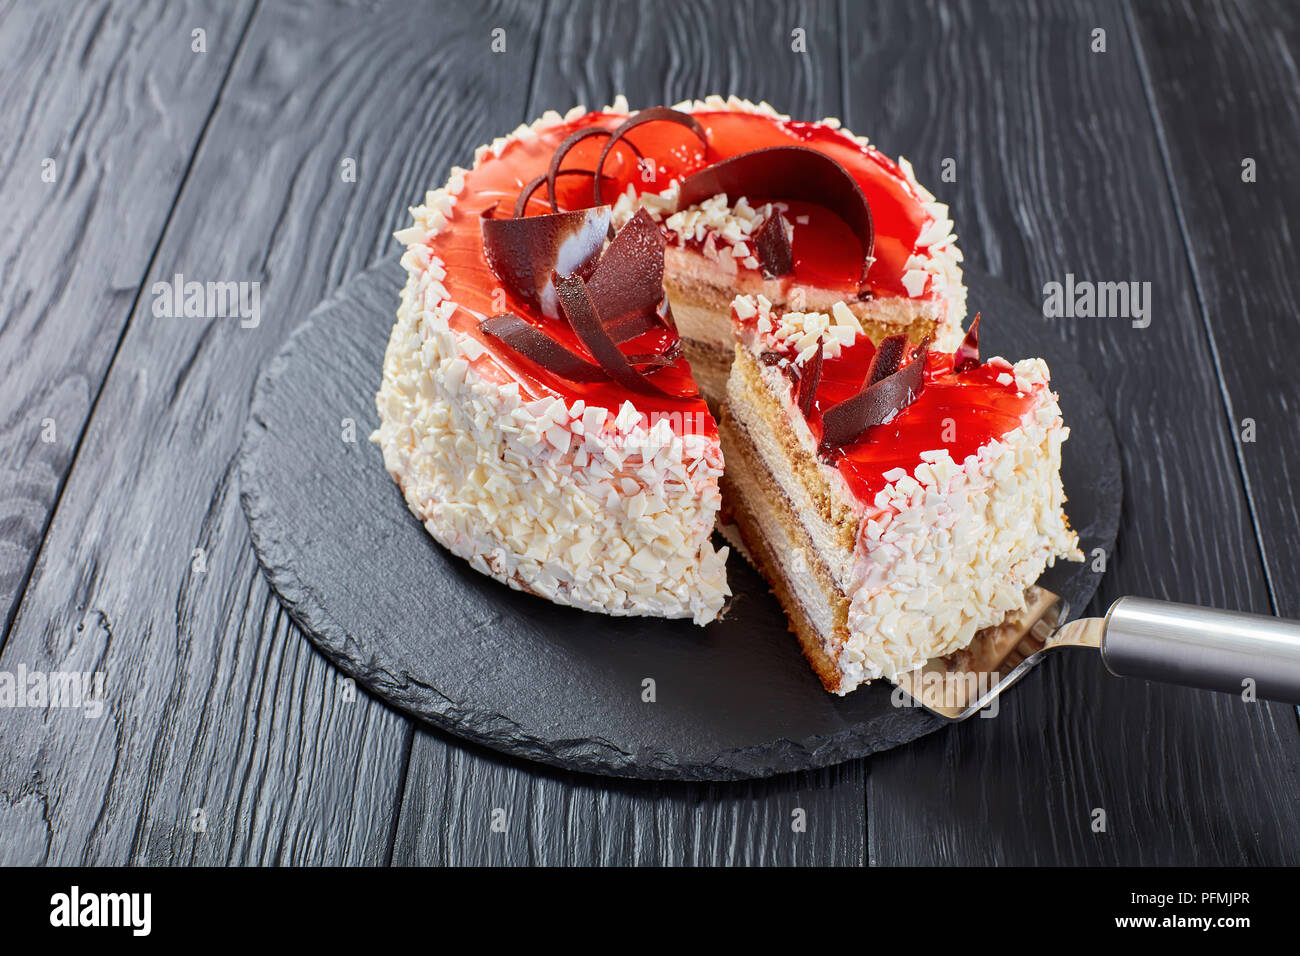 delicious sponge cake layered with cream cheese mousse decorated with white chocolate flakes, red berry jelly and chocolate chips on black slate plate - Stock Image